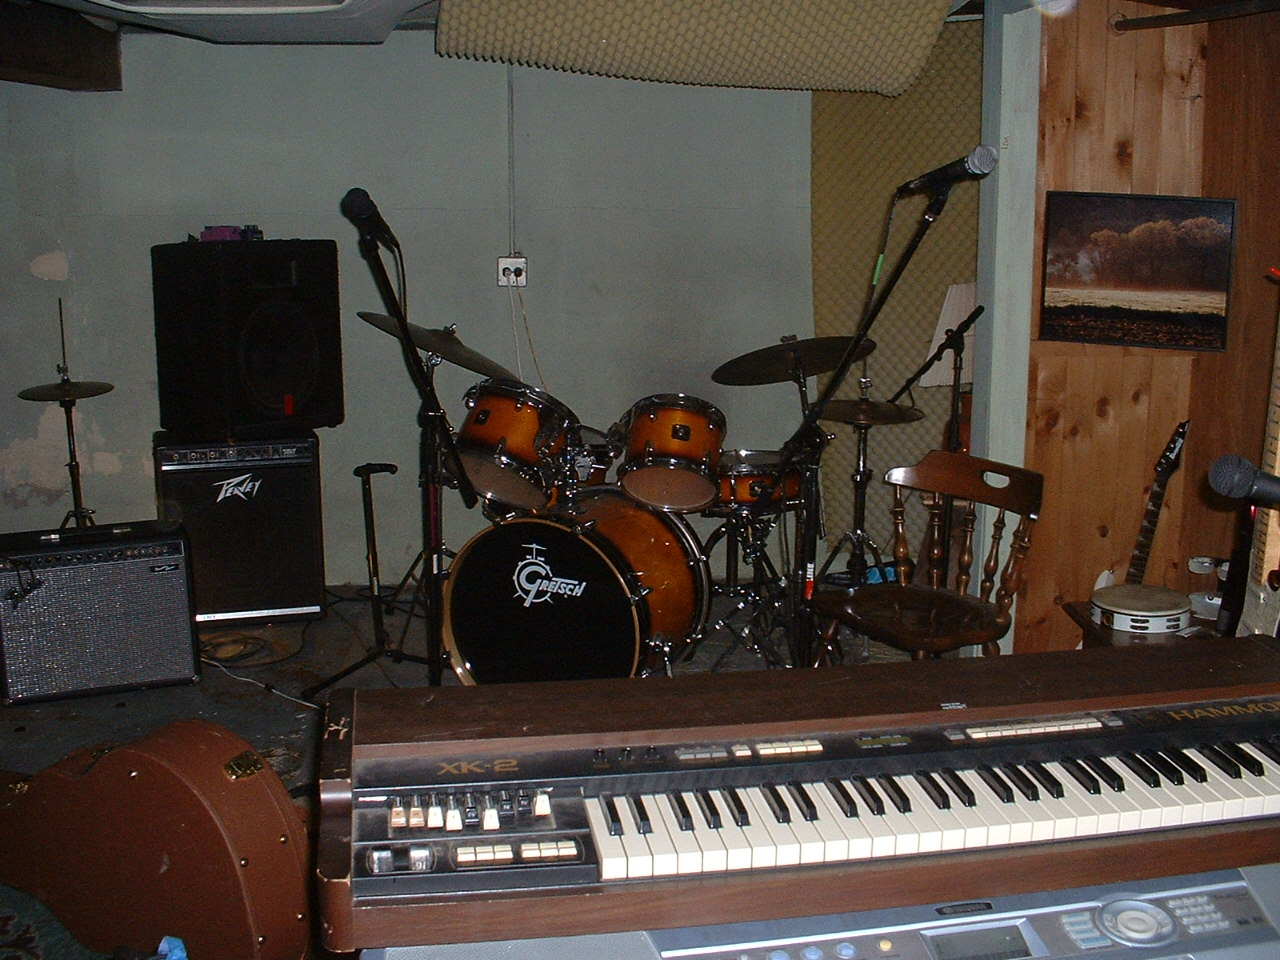 The Jam Space